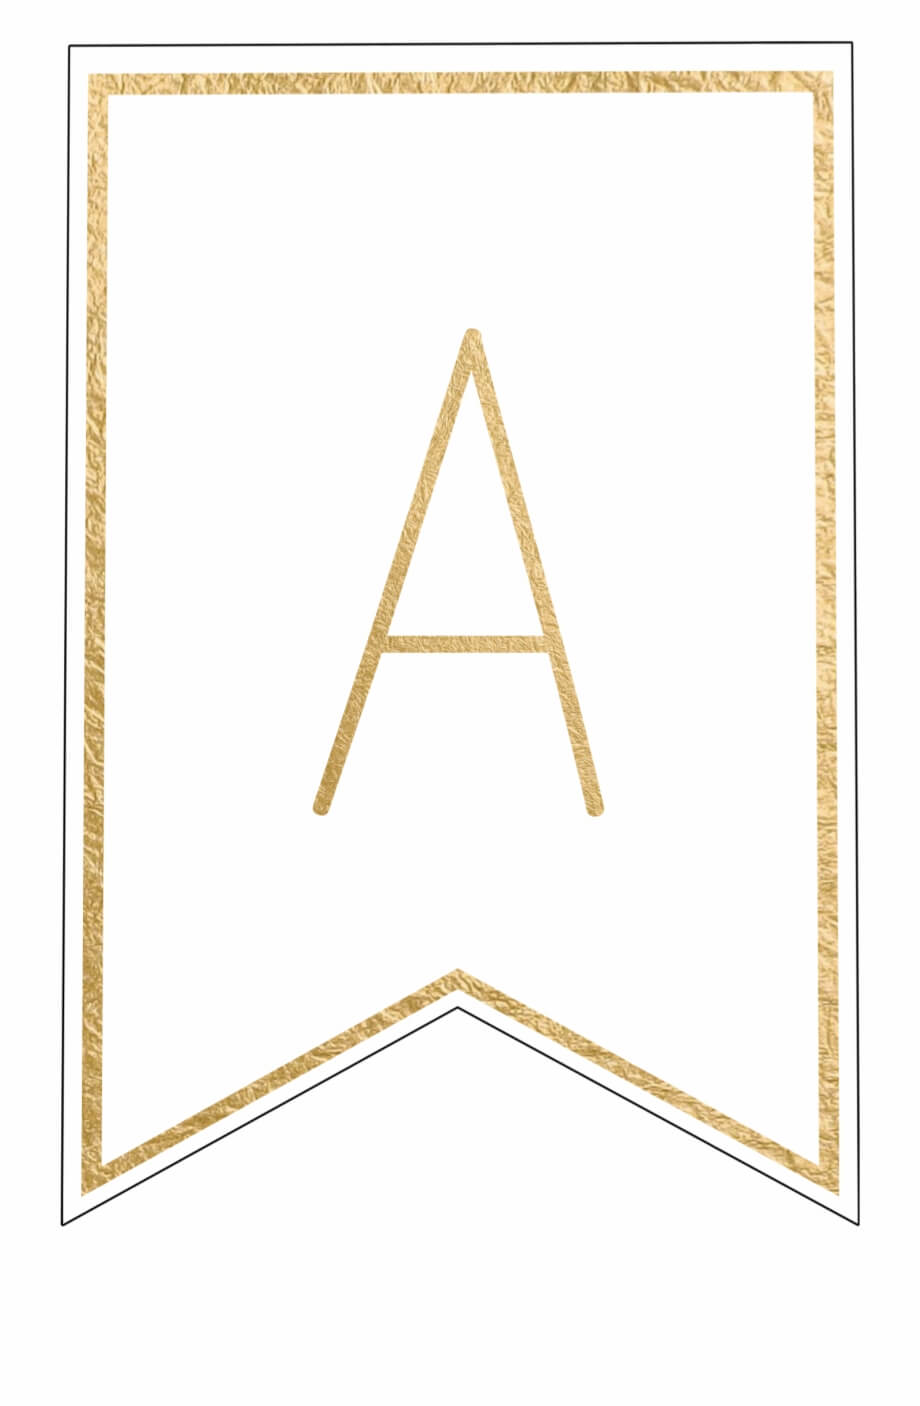 Free Printable Banner Letters Template - Letter Png Gold Inside Printable Letter Templates For Banners